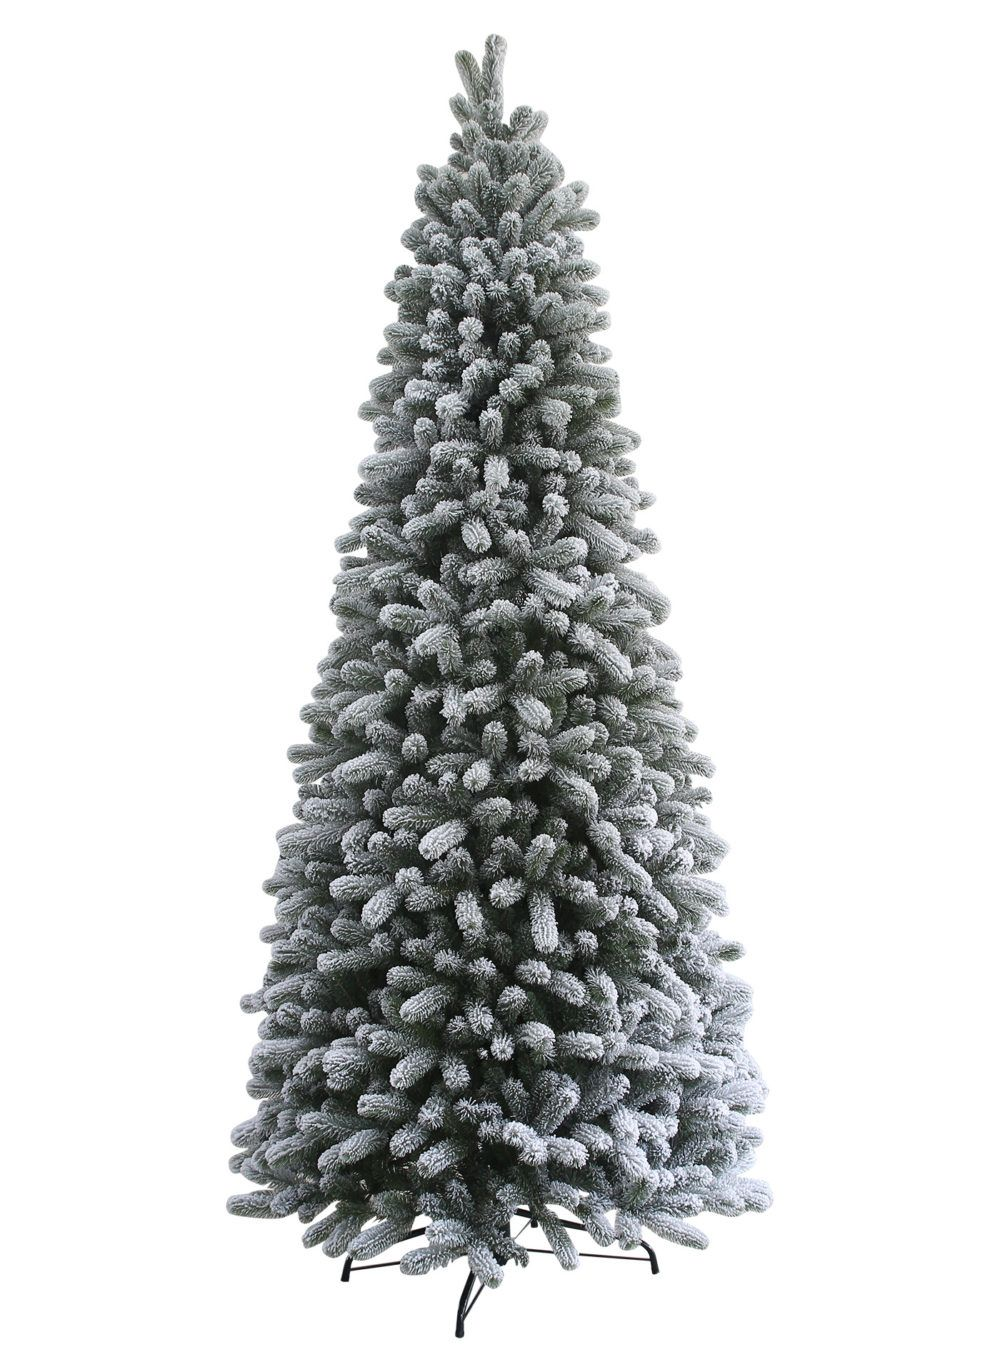 9 Foot King Flock Slim Artificial Christmas Tree With 700 Warm White Led Lights Flocked Artificial Christmas Trees Slim Christmas Tree Slim Artificial Christmas Trees